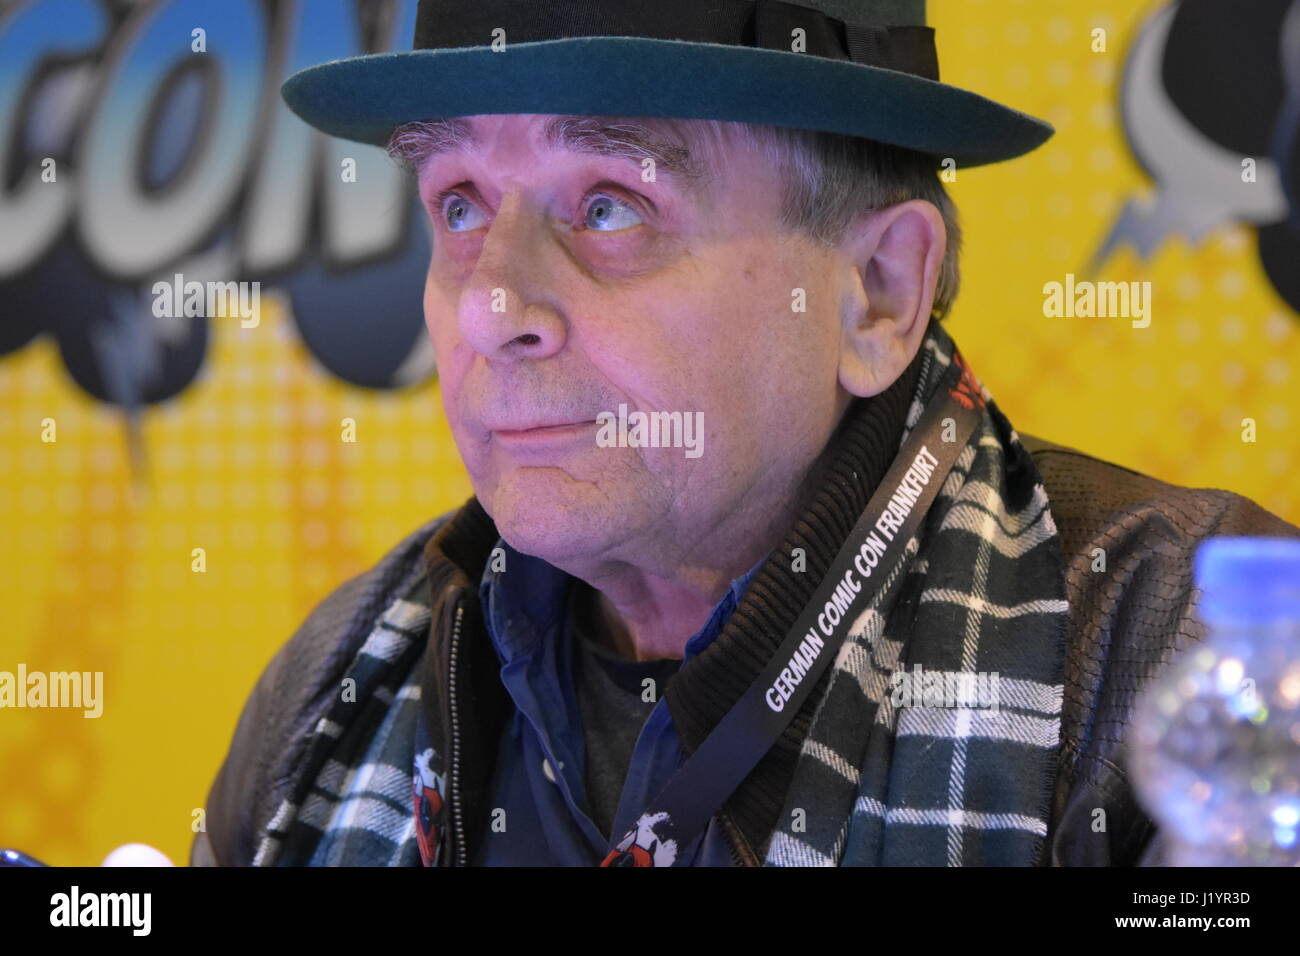 Frankfurt, Germany. 22nd April 2017. Sylvester McCoy (Doctor Who, The Hobbit) at the German Comic Con Frankfurt - Stock Image